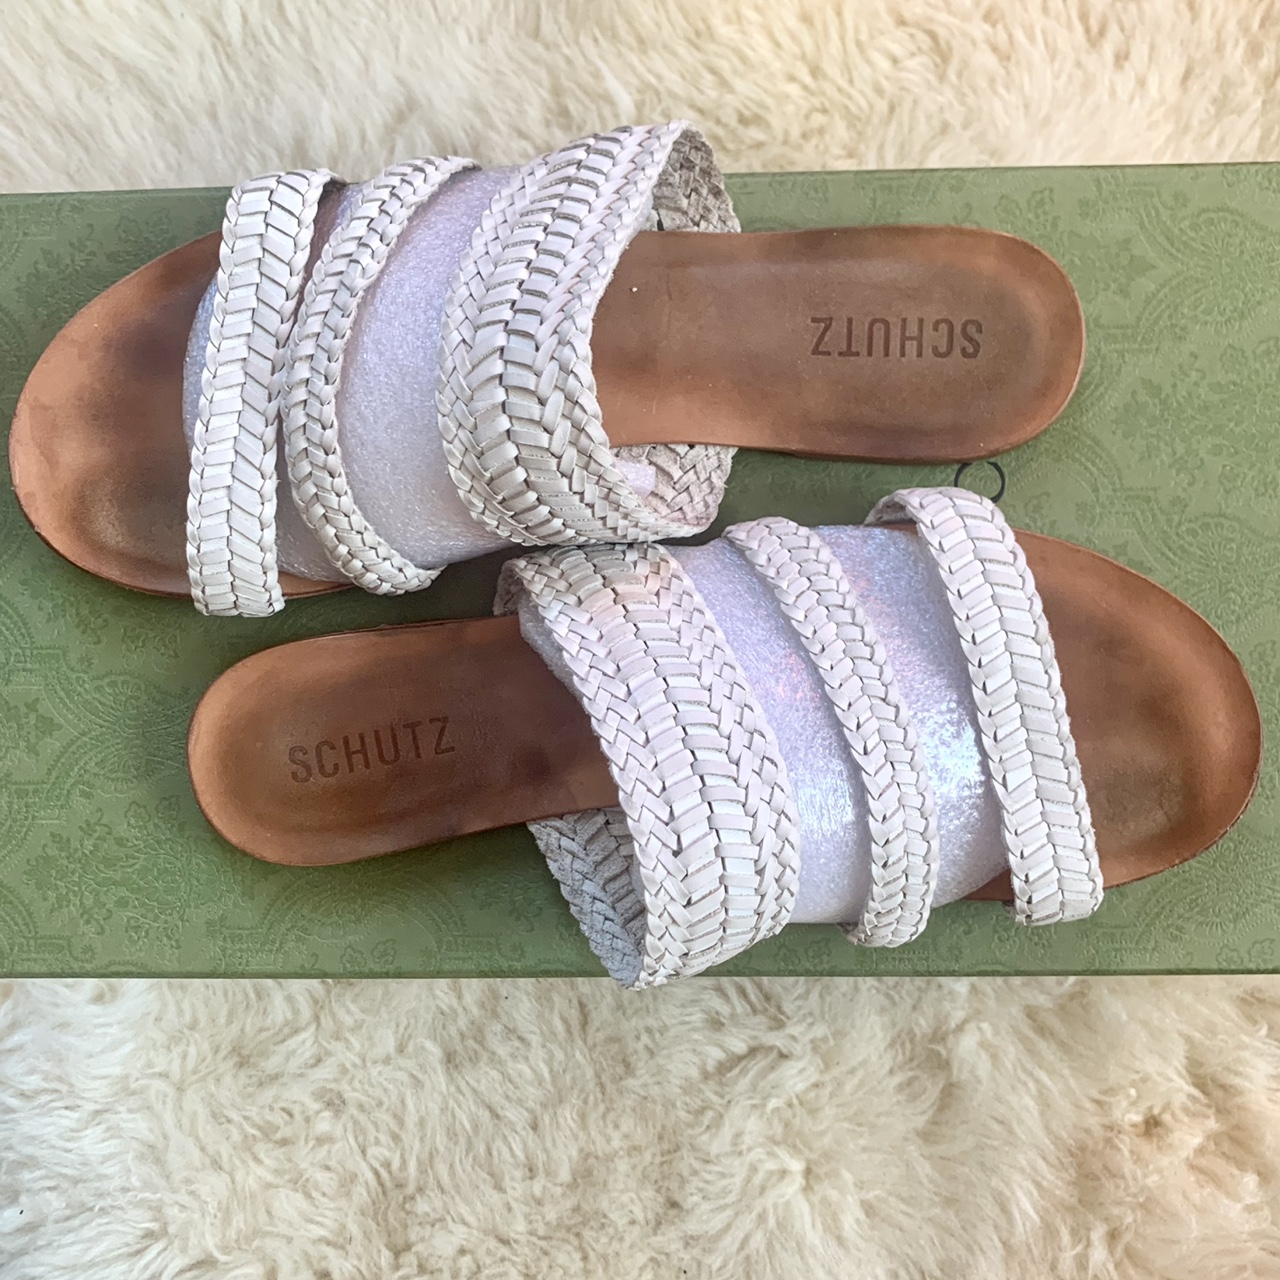 Product Image 1 - Schutz Leather Sandal White Woven